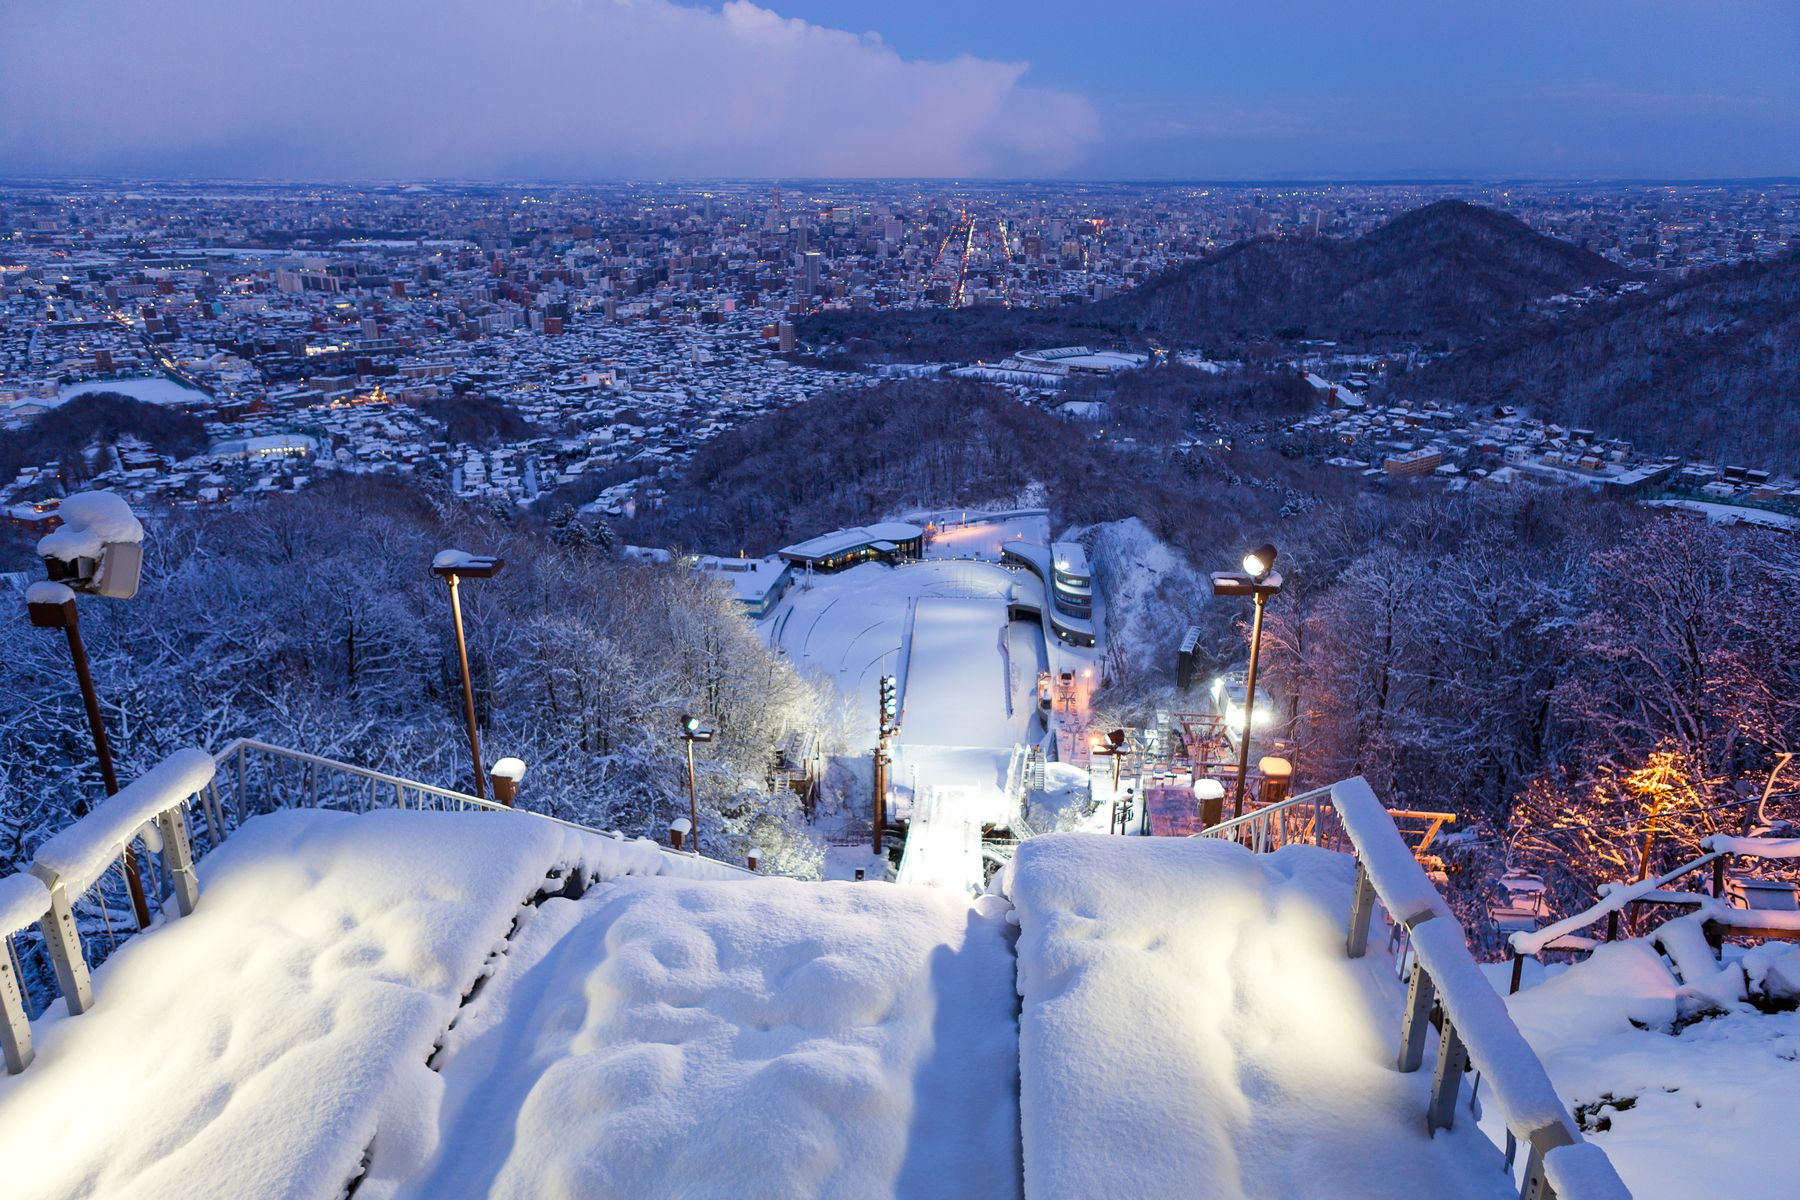 Looking down from the top of a ski jump to the lights of Sapporo city in Hokkaido, Japan.